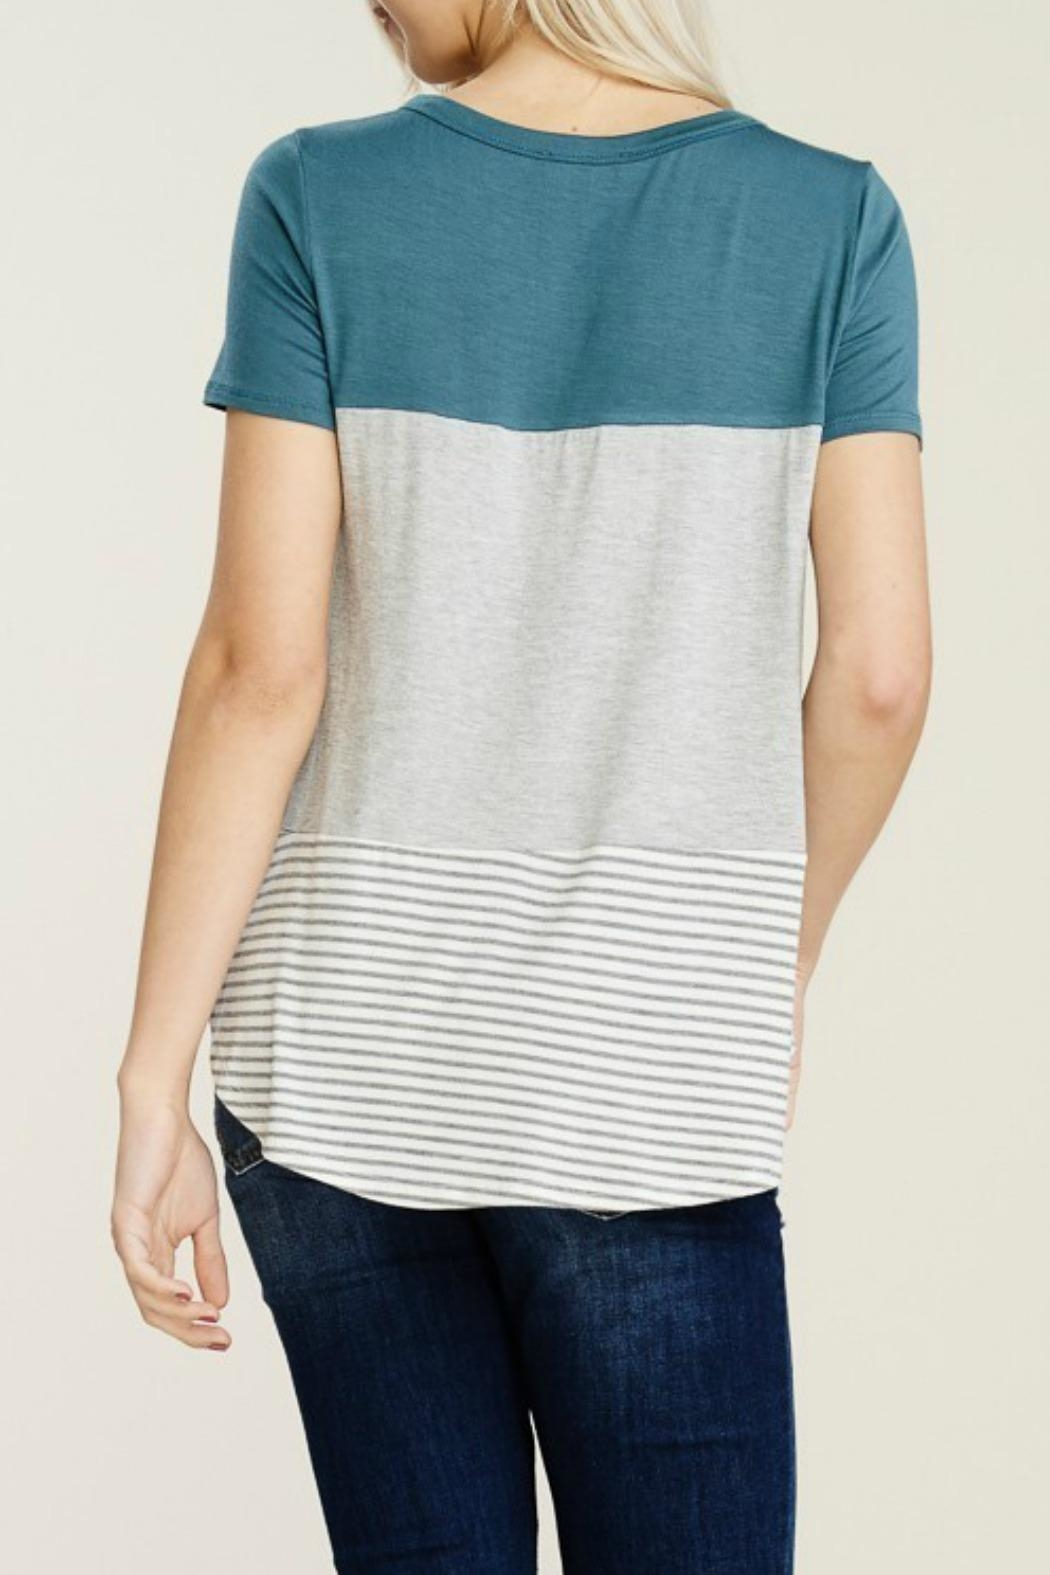 Papermoon Clothing Teal Colorblock Tee - Side Cropped Image